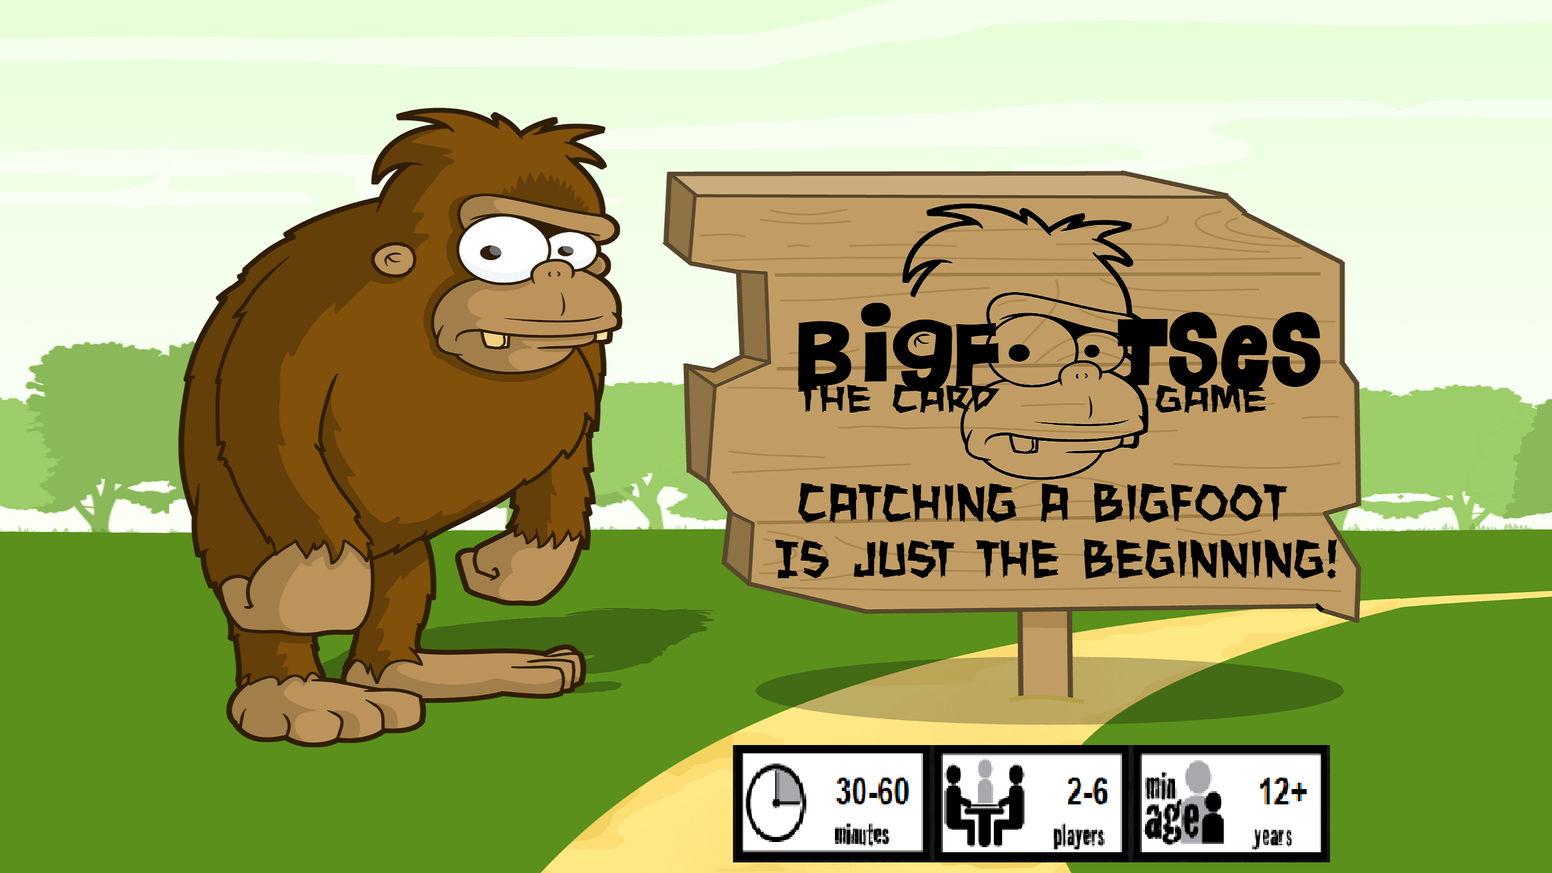 Anyone can find one Bigfoot, but can you be the first player to find and corral ten Bigfootses in this hilarious card game?